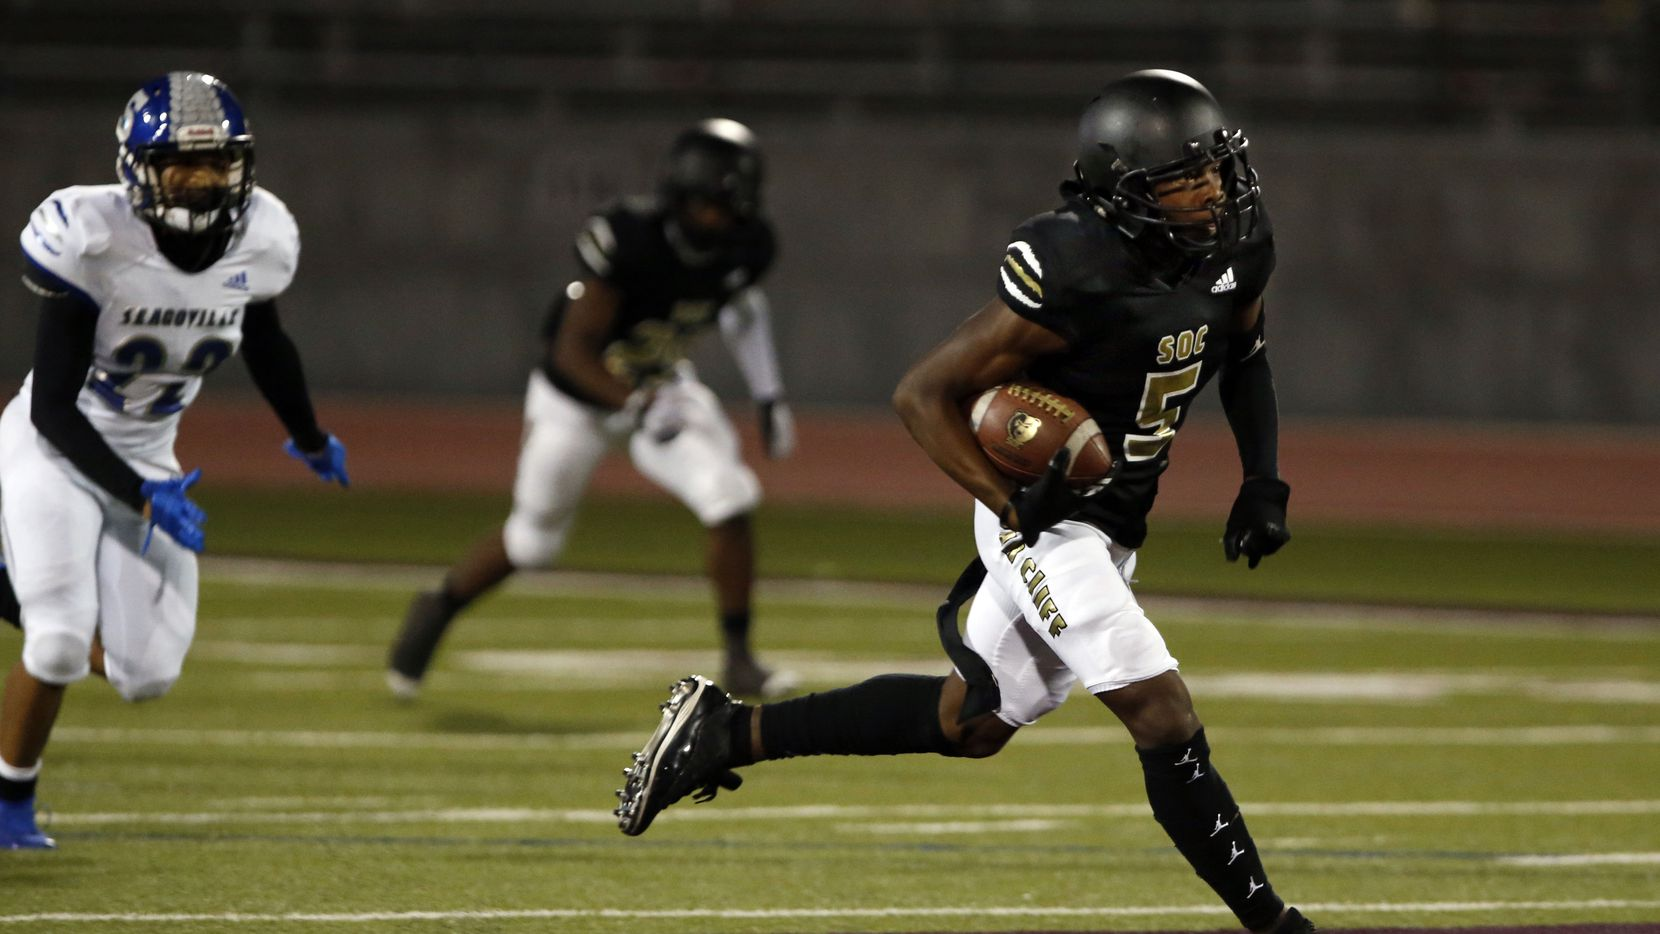 South Oak Cliff's Randy Reece (5) runs for a touchdown during the first half of high school football game between against Seagoville at Kincaide Stadium in Dallas on Thursday, November 12, 2020.